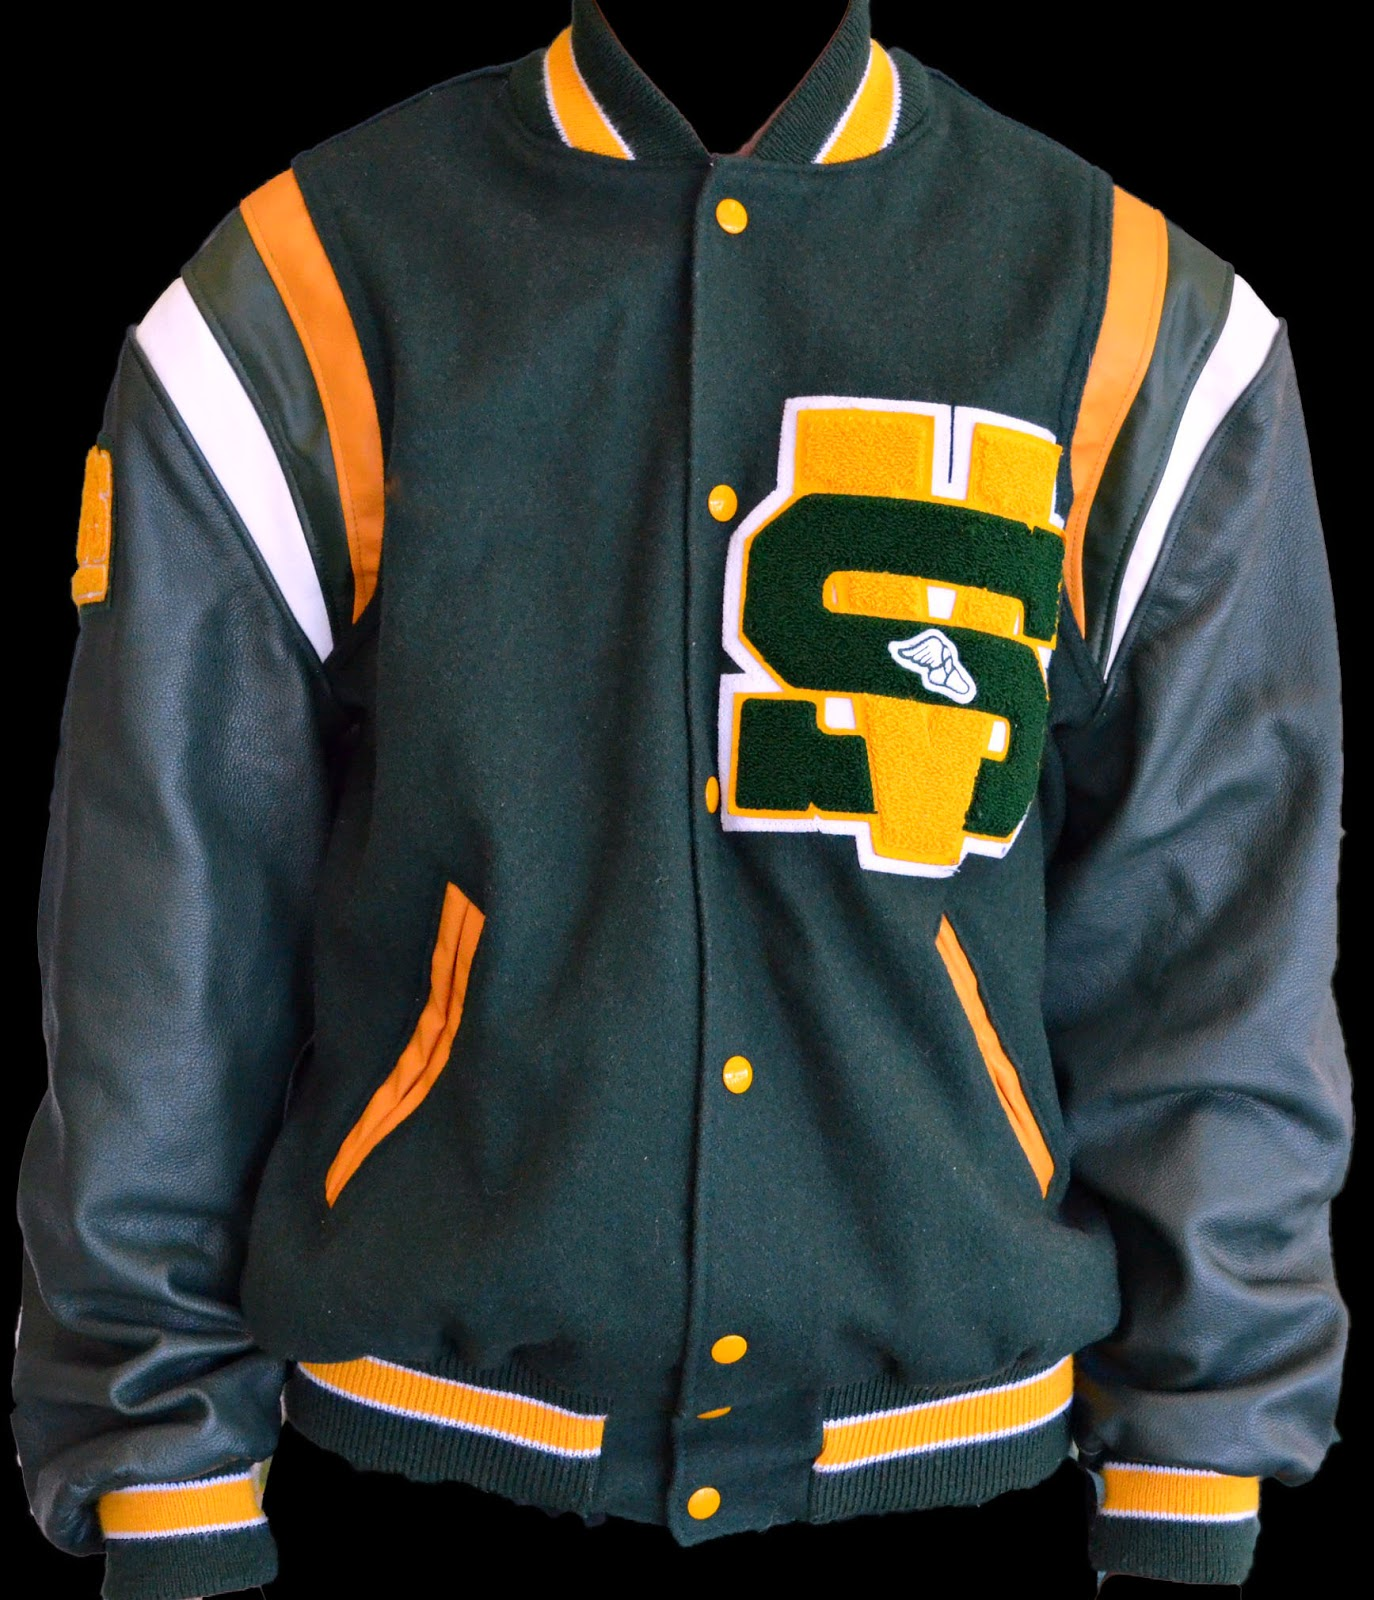 a neff sales representative will be here on monday 324 to do letter jacket sizing and orders this will be done during lunch in bates hall